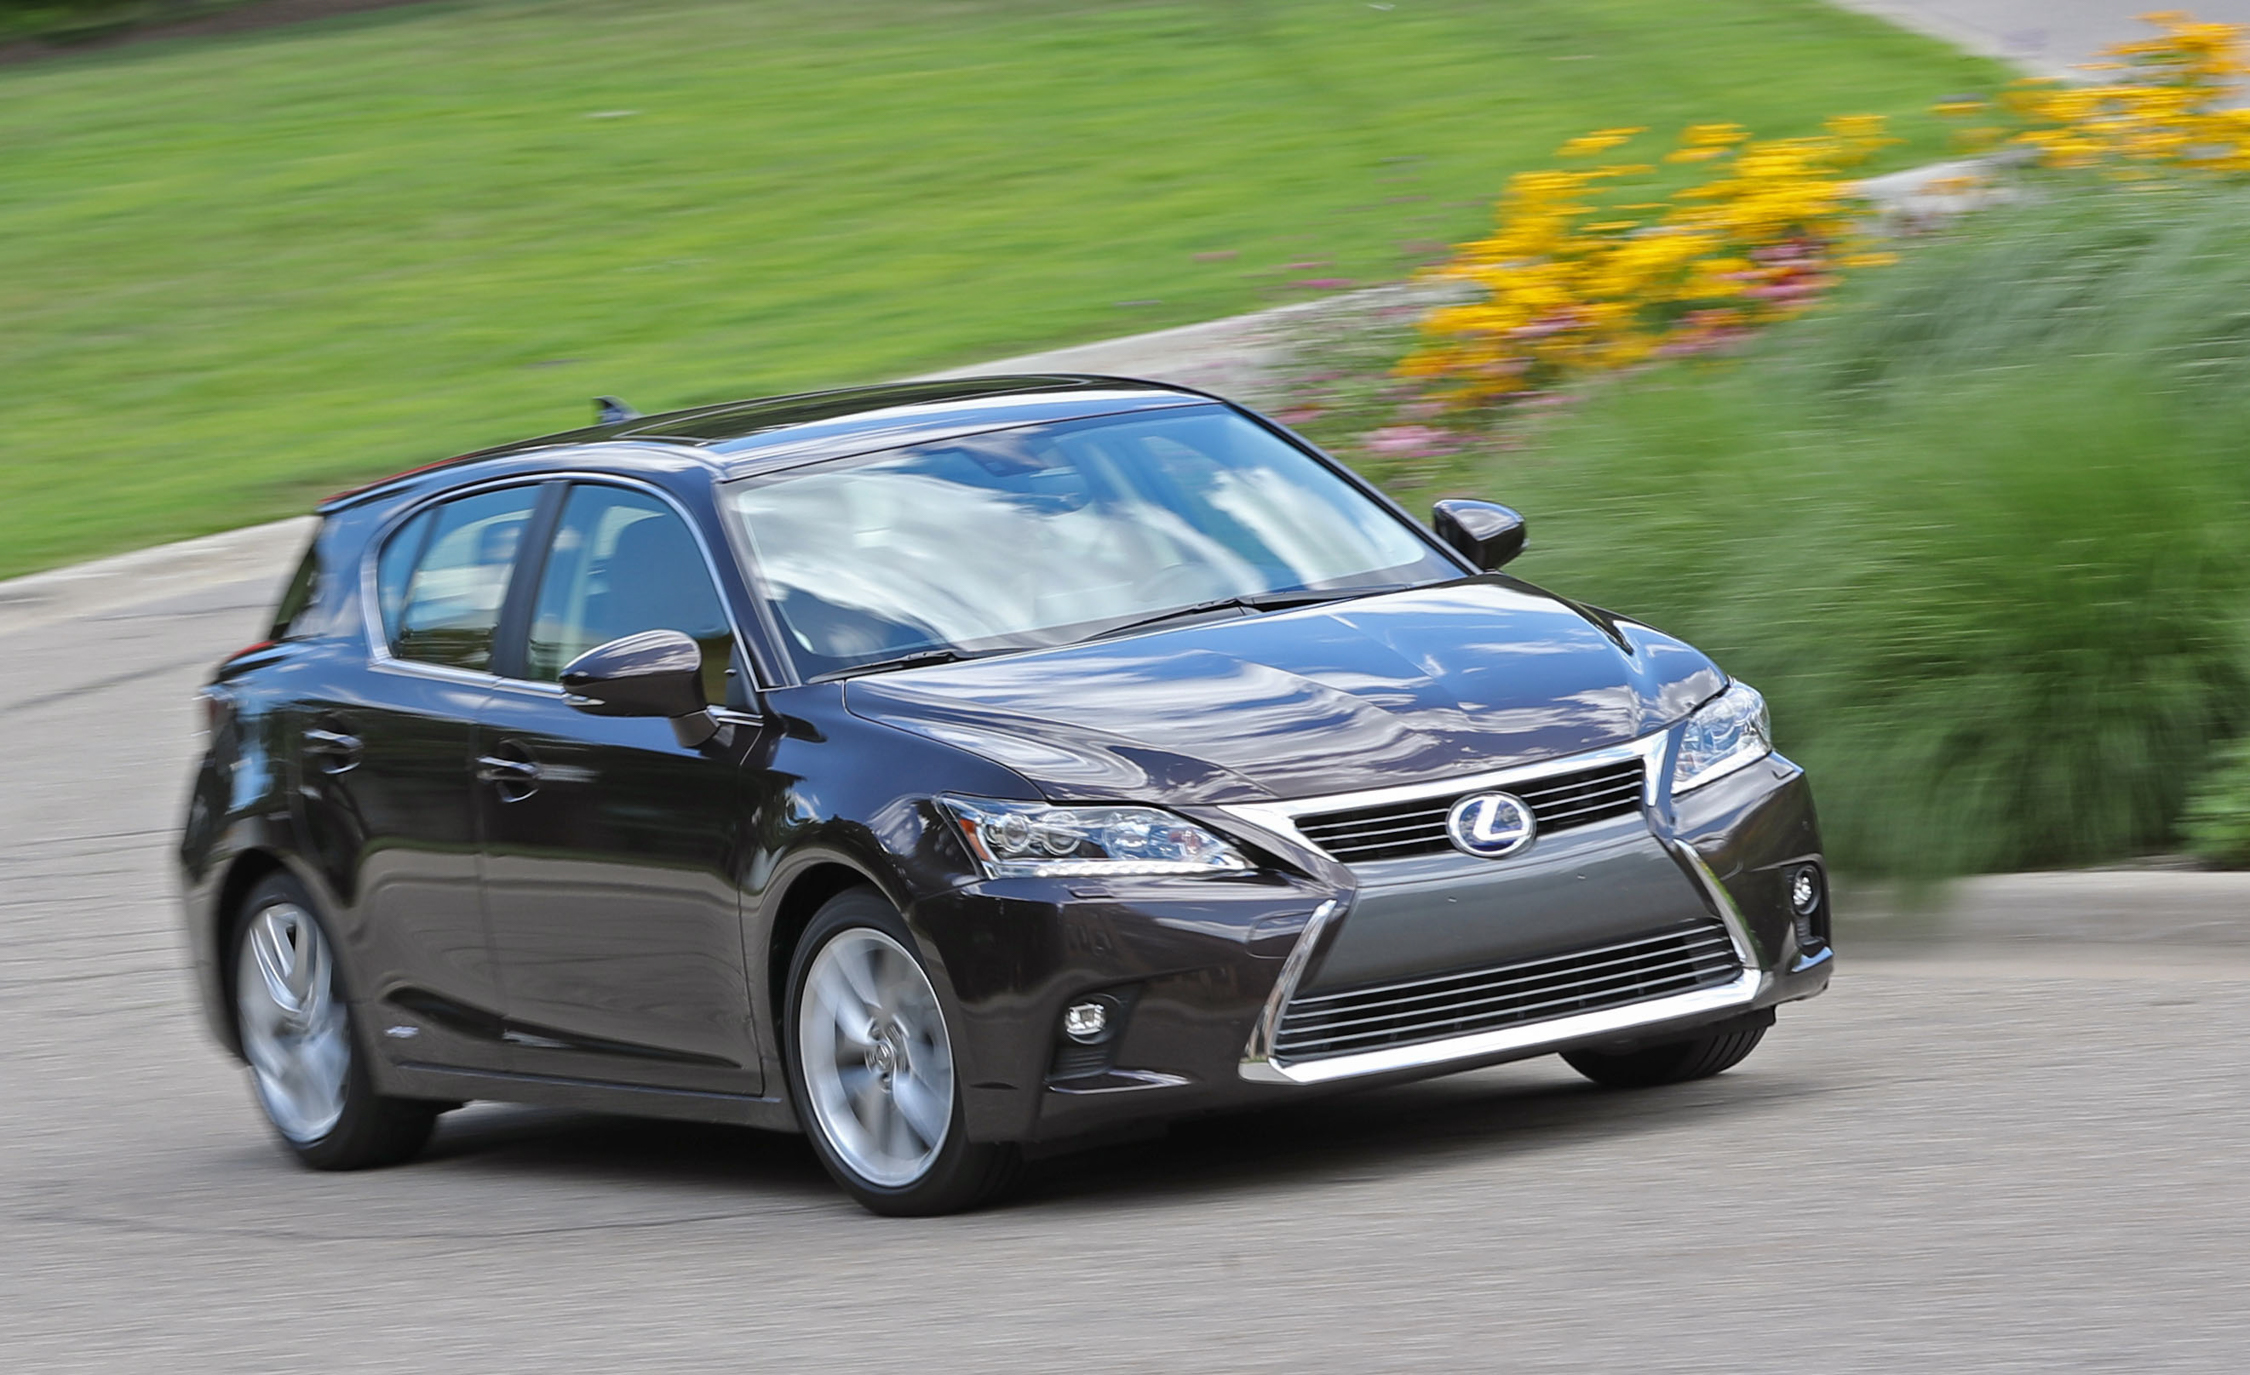 2016 Lexus CT200h (View 29 of 29)